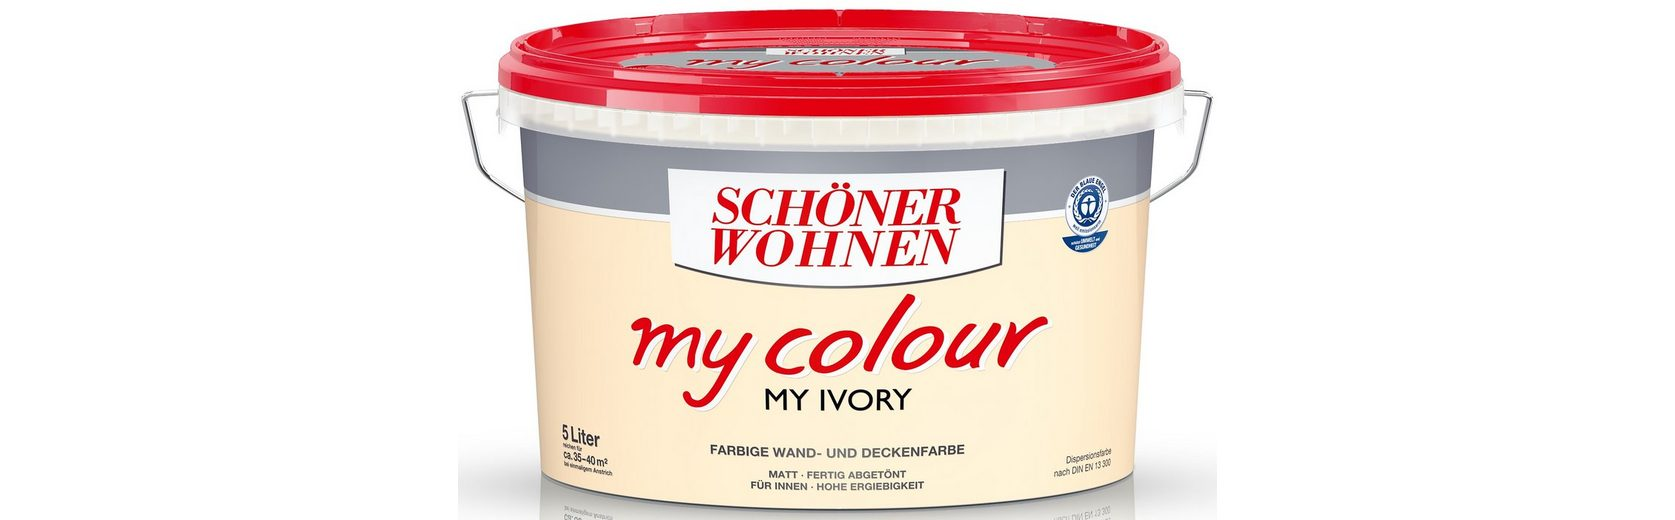 Innenfarbe »my colour«, my ivory